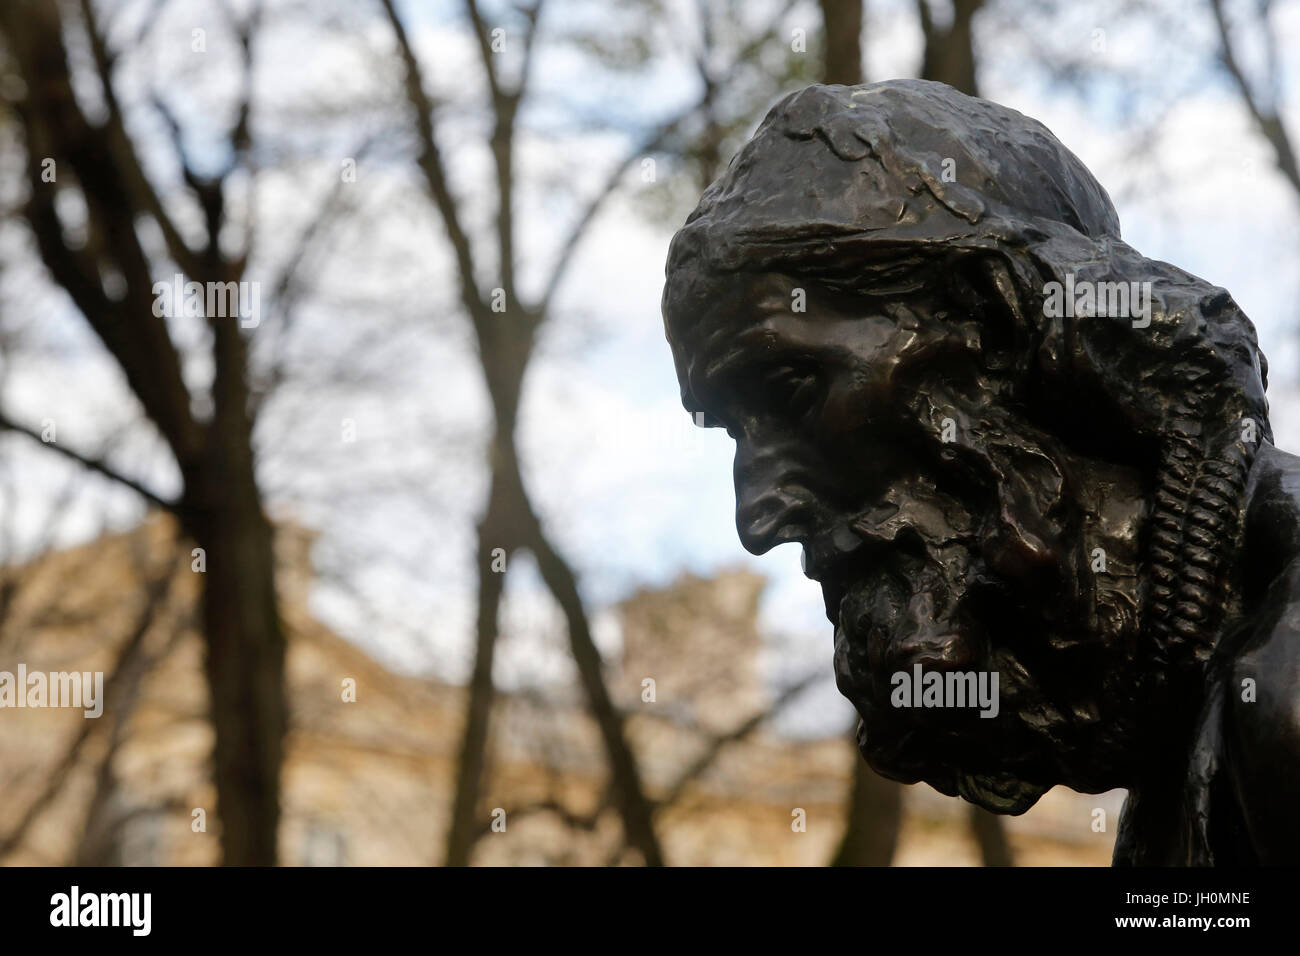 Rodin museum, Paris. Monument to the Burghers of Calais. Detail.  France. - Stock Image